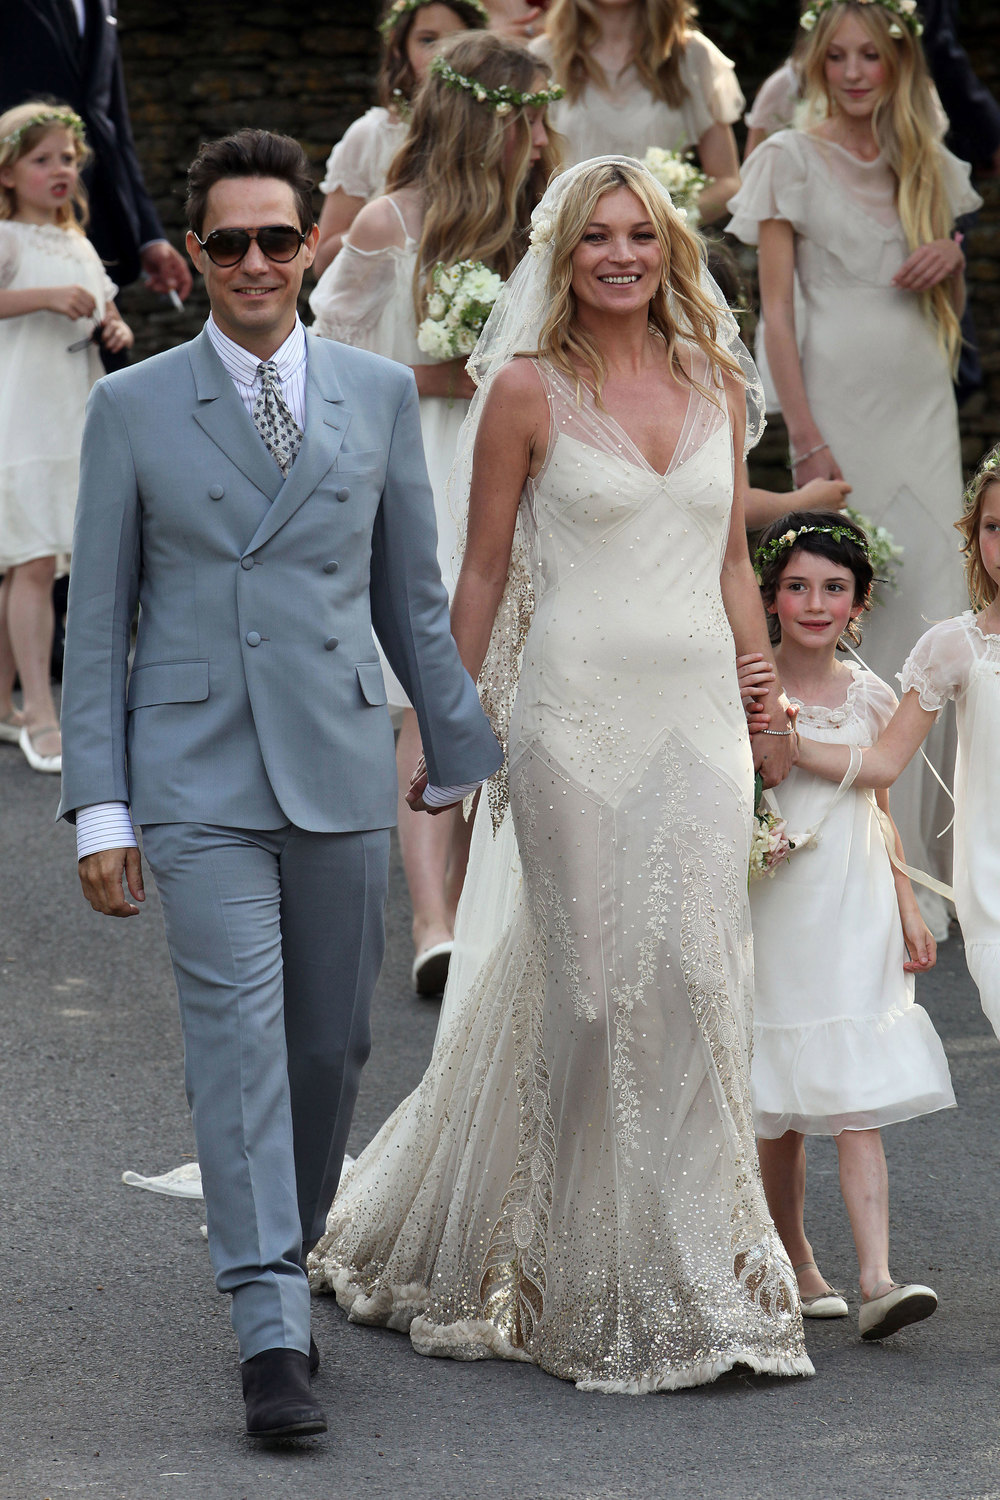 wildflower Kate Moss wed Jamie Hince in England in 2011 | follow along on Instagram @ thewildflowers.events